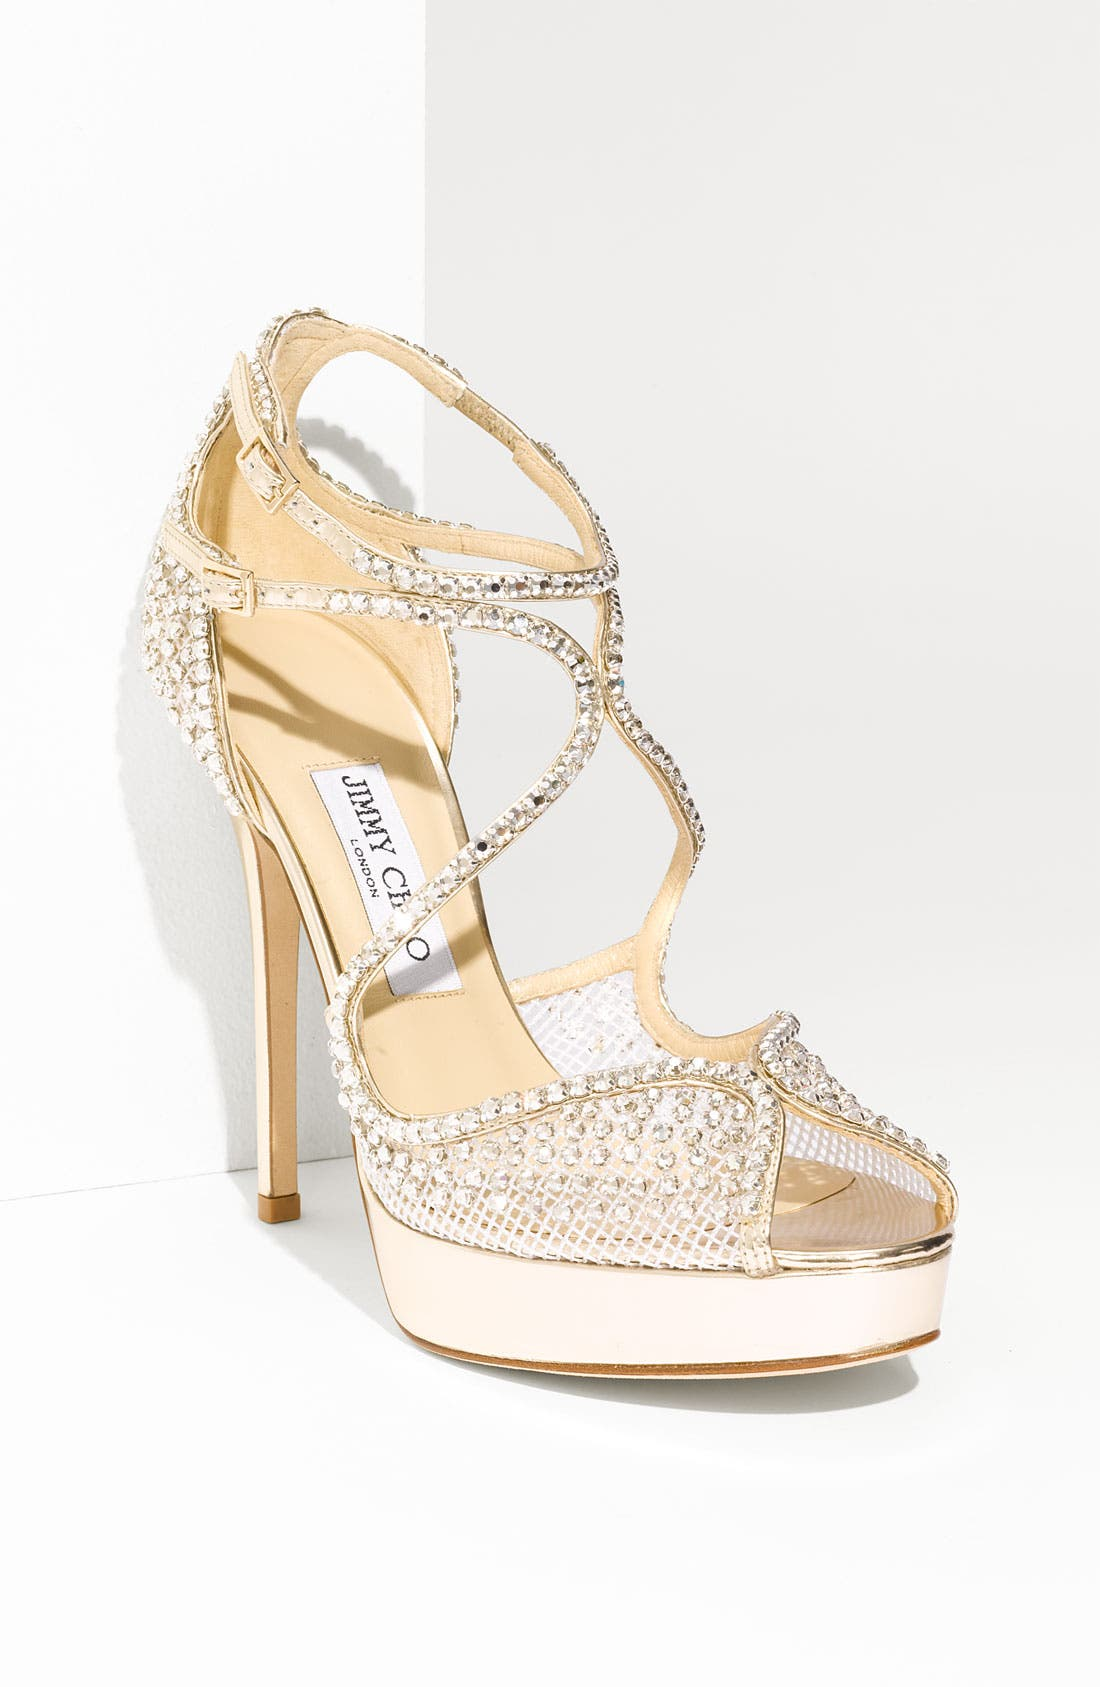 'Fairview' Crystal Embellished Sandal,                             Main thumbnail 1, color,                             040